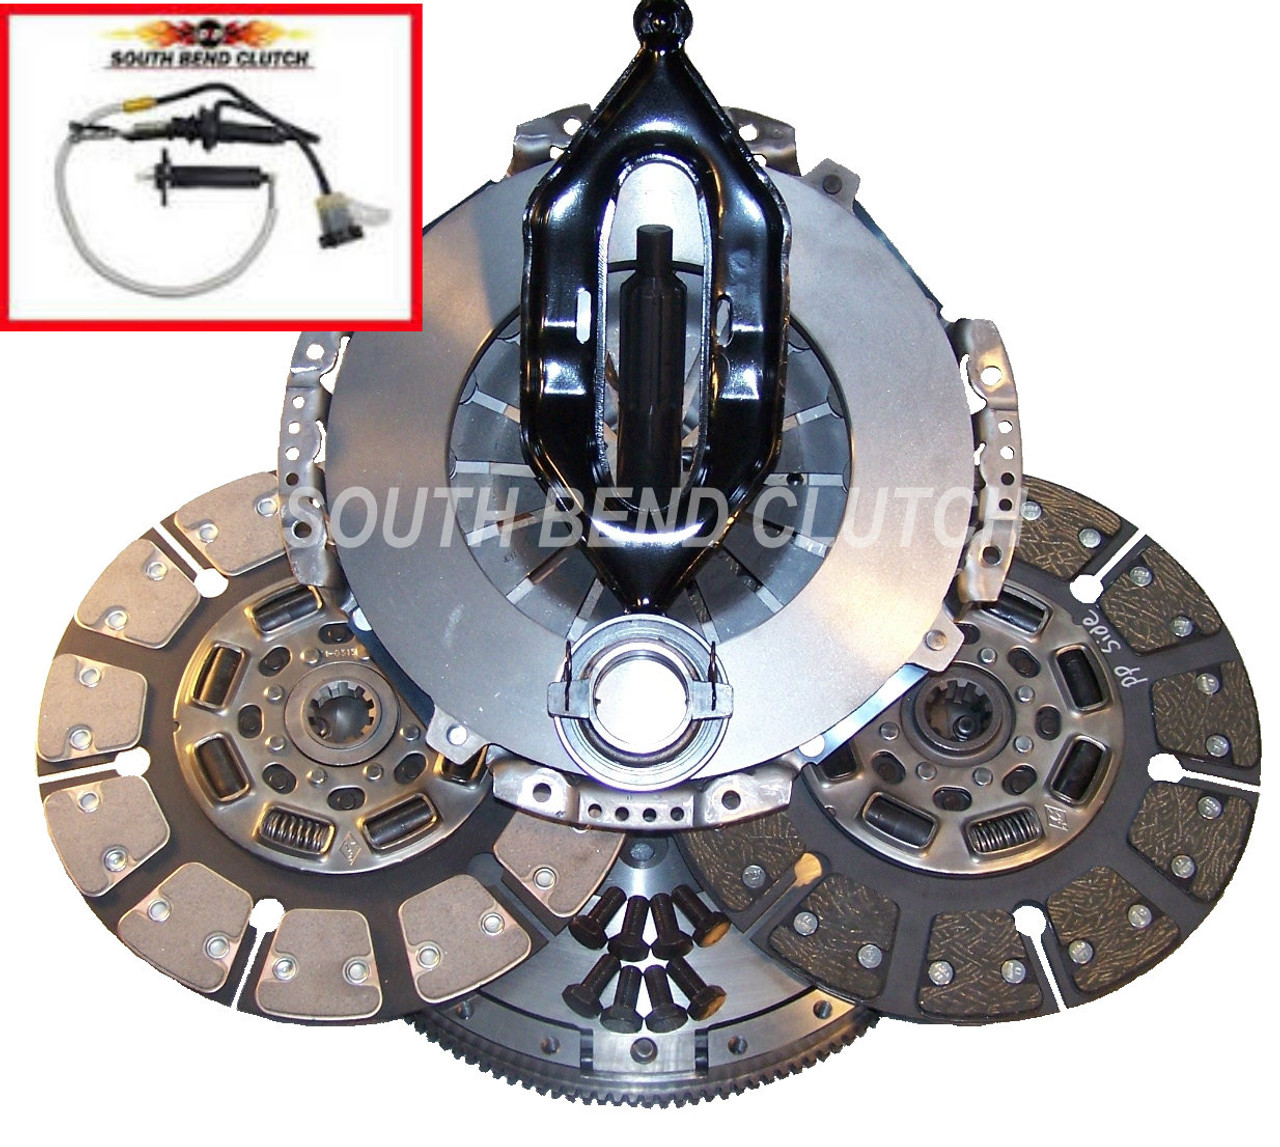 Dodge Street Dual Disc Clutch With Hydraulics 650HP South Bend Clutch Dodge  G56 Trans 2005 5+